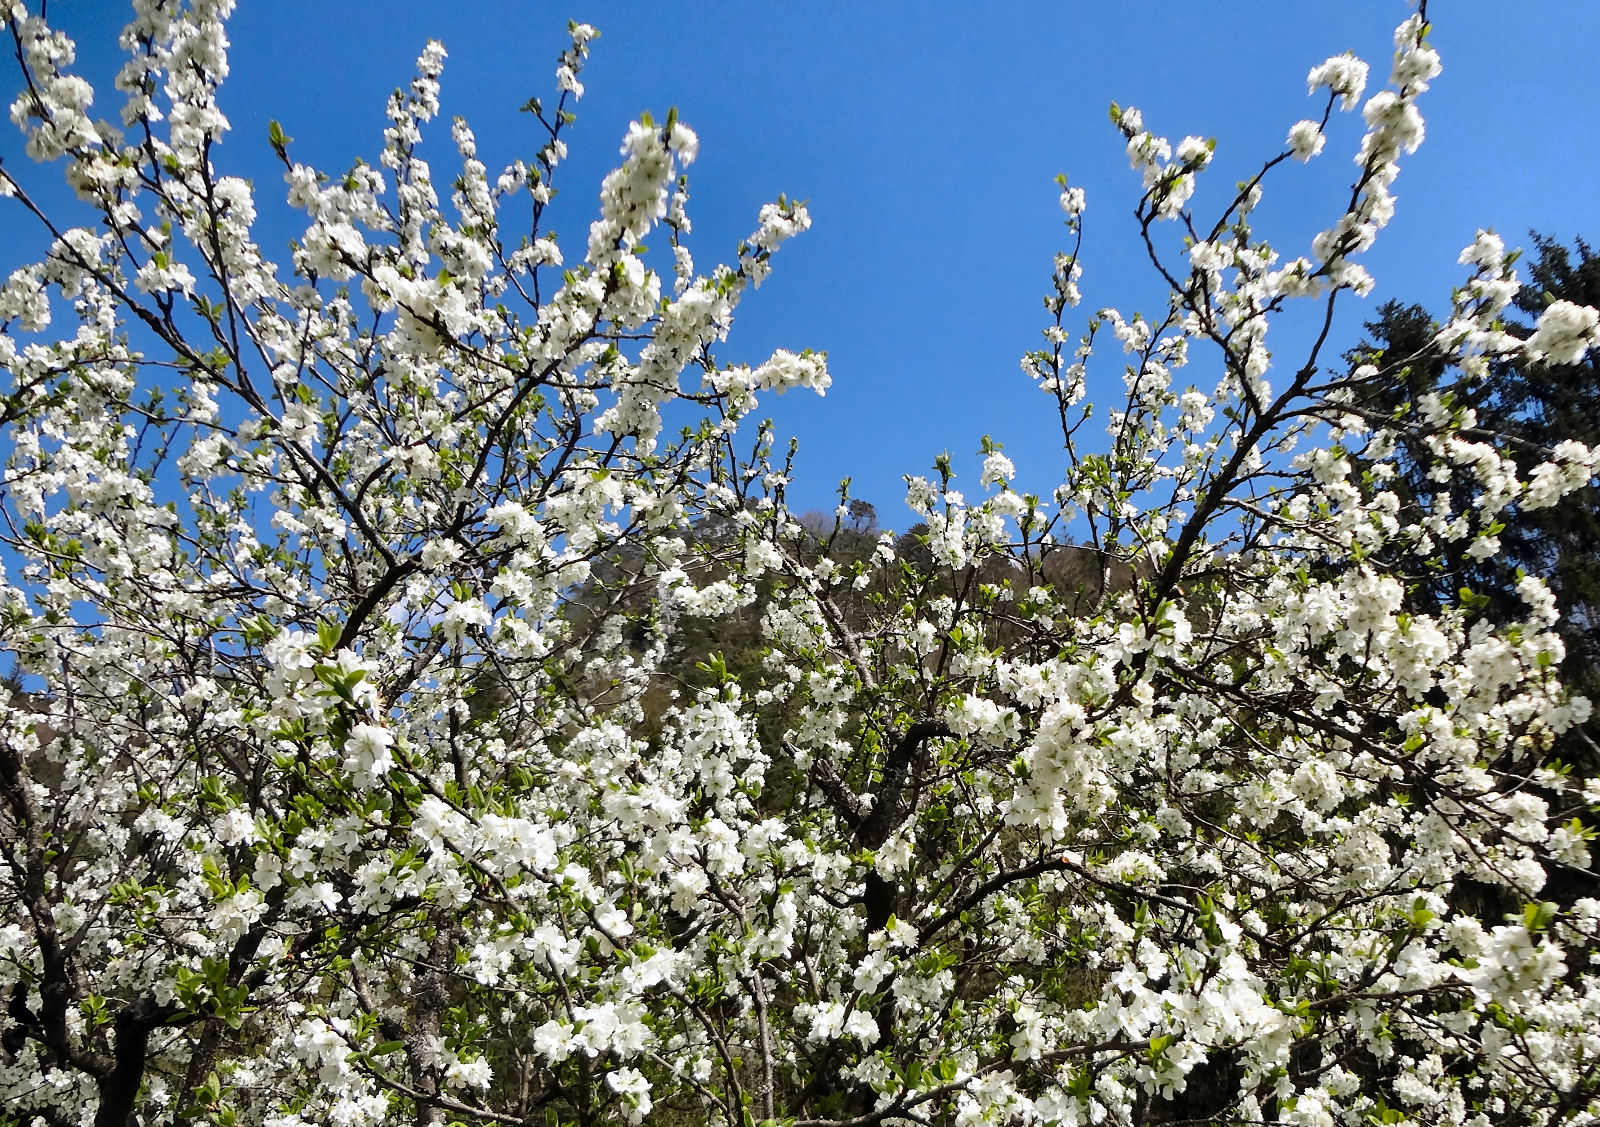 Blooming fruit tree in spring